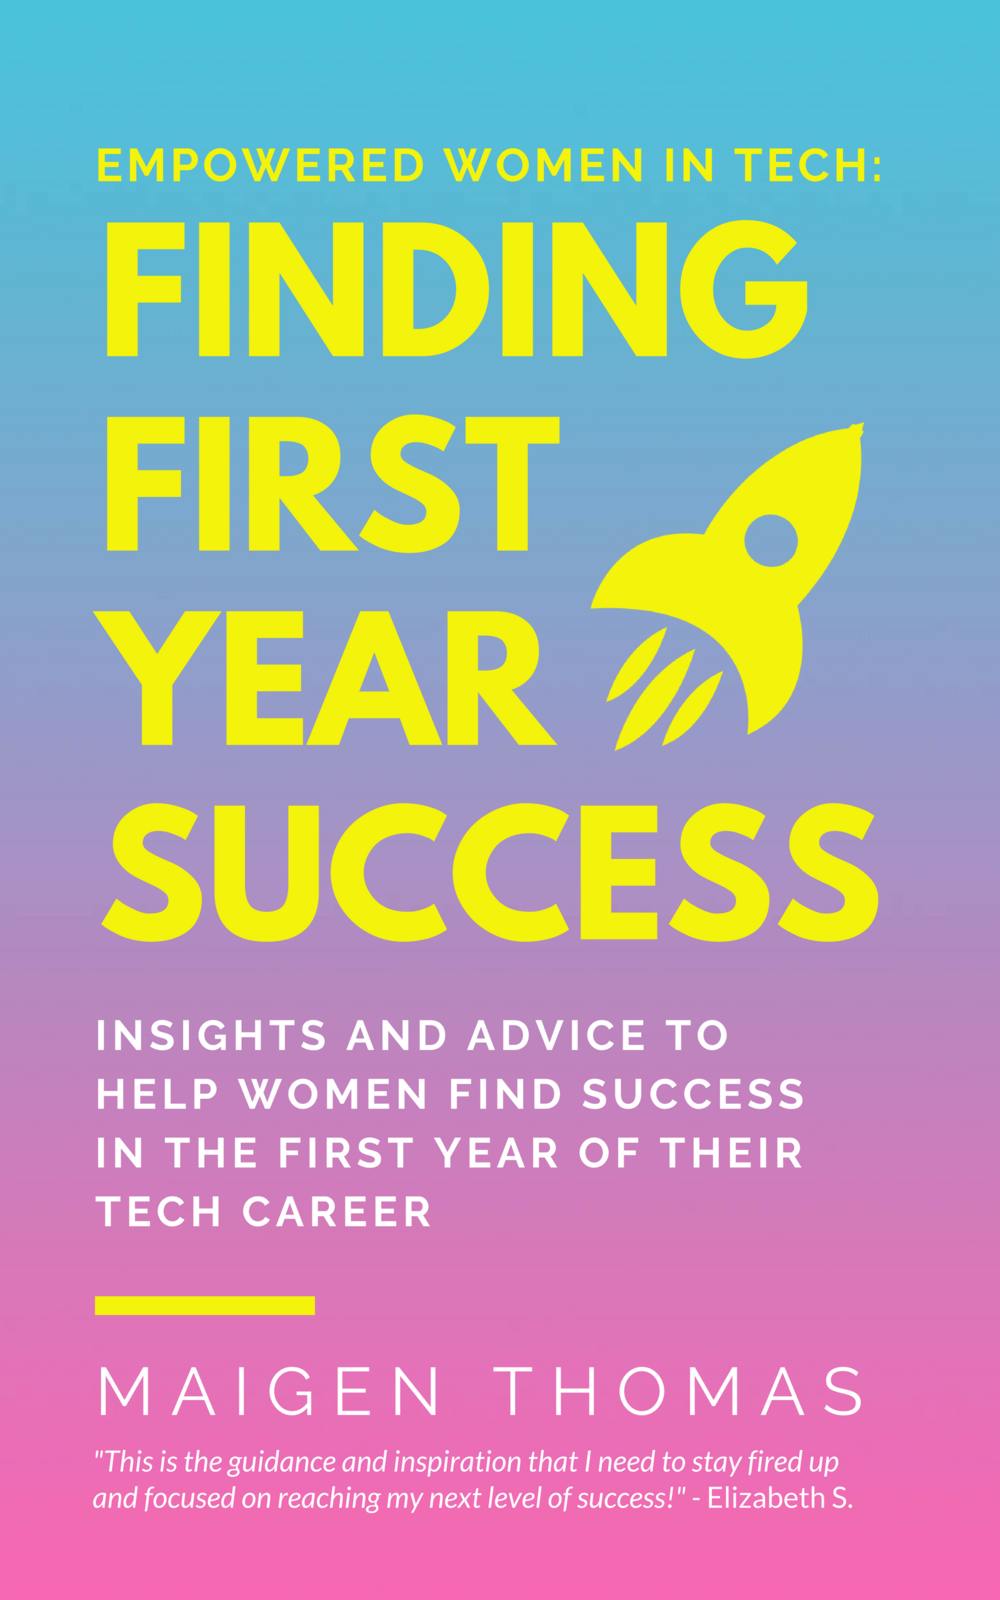 Empowered Women in Tech: Finding First Year Success - Focused on helping women who are starting their first career in tech, as well as those who are transitioning into technology as a second career, this book combines practical and actionable advice with personal insights from 60 successful tech women. Empowered Women in Tech: Finding First Year Success covers a variety of issues a woman might face in her first year, including: When, how and where to find mentorship. Non-technical skills needed to truly succeed. How to seek out and handle constructive or critical feedback. Ways to stay focused and consistent in the face of adversity. How to build a supportive network of other women. Techniques for facing challenges and overcoming them creatively.This book is dedicated to every woman who has ever felt like an impostor as she embarks on her career in tech.